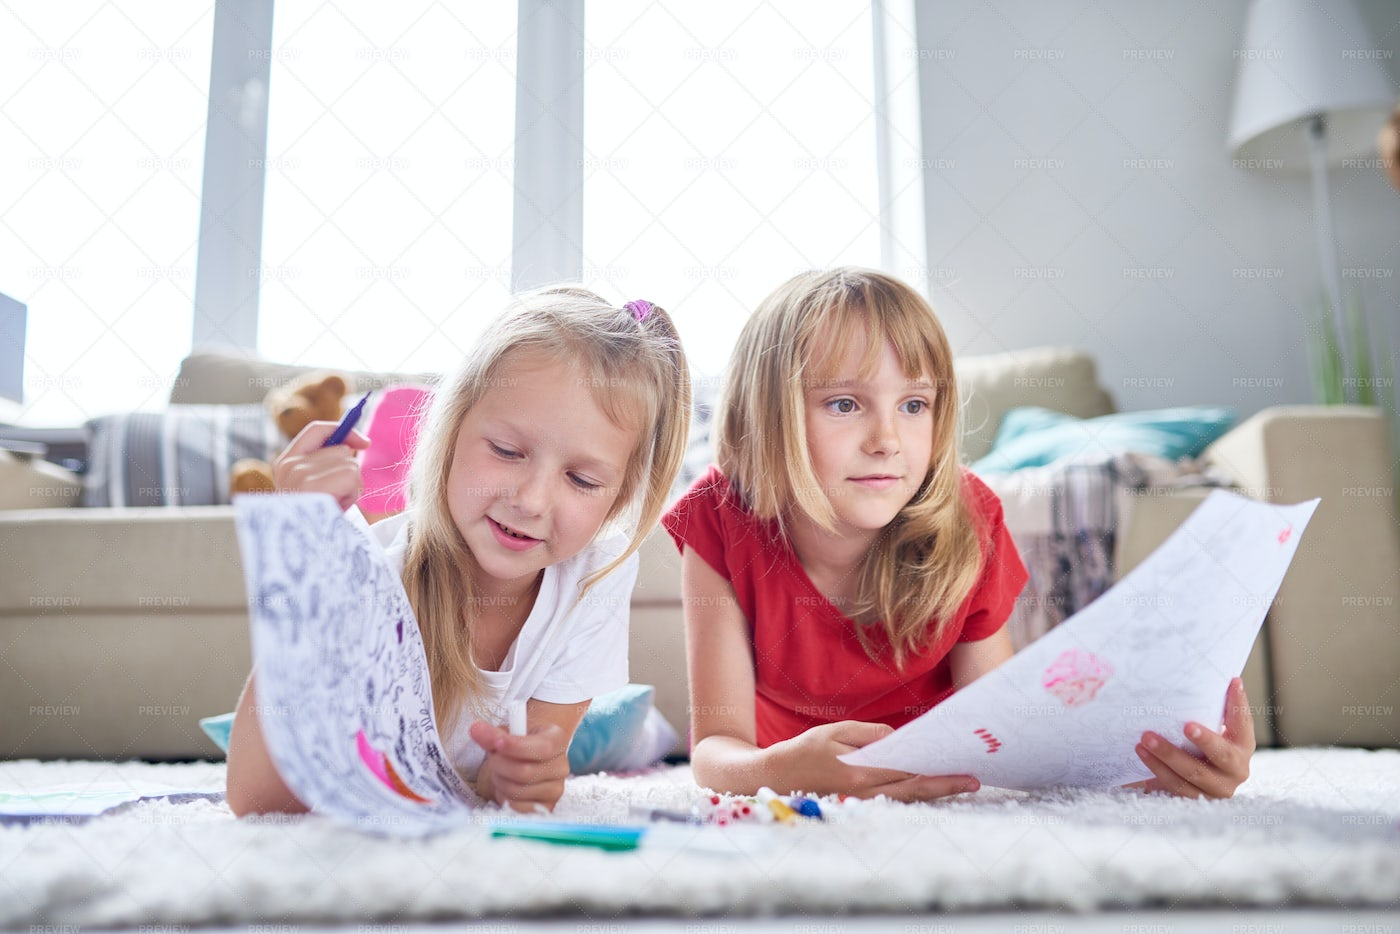 Creative Little Sisters At Home: Stock Photos